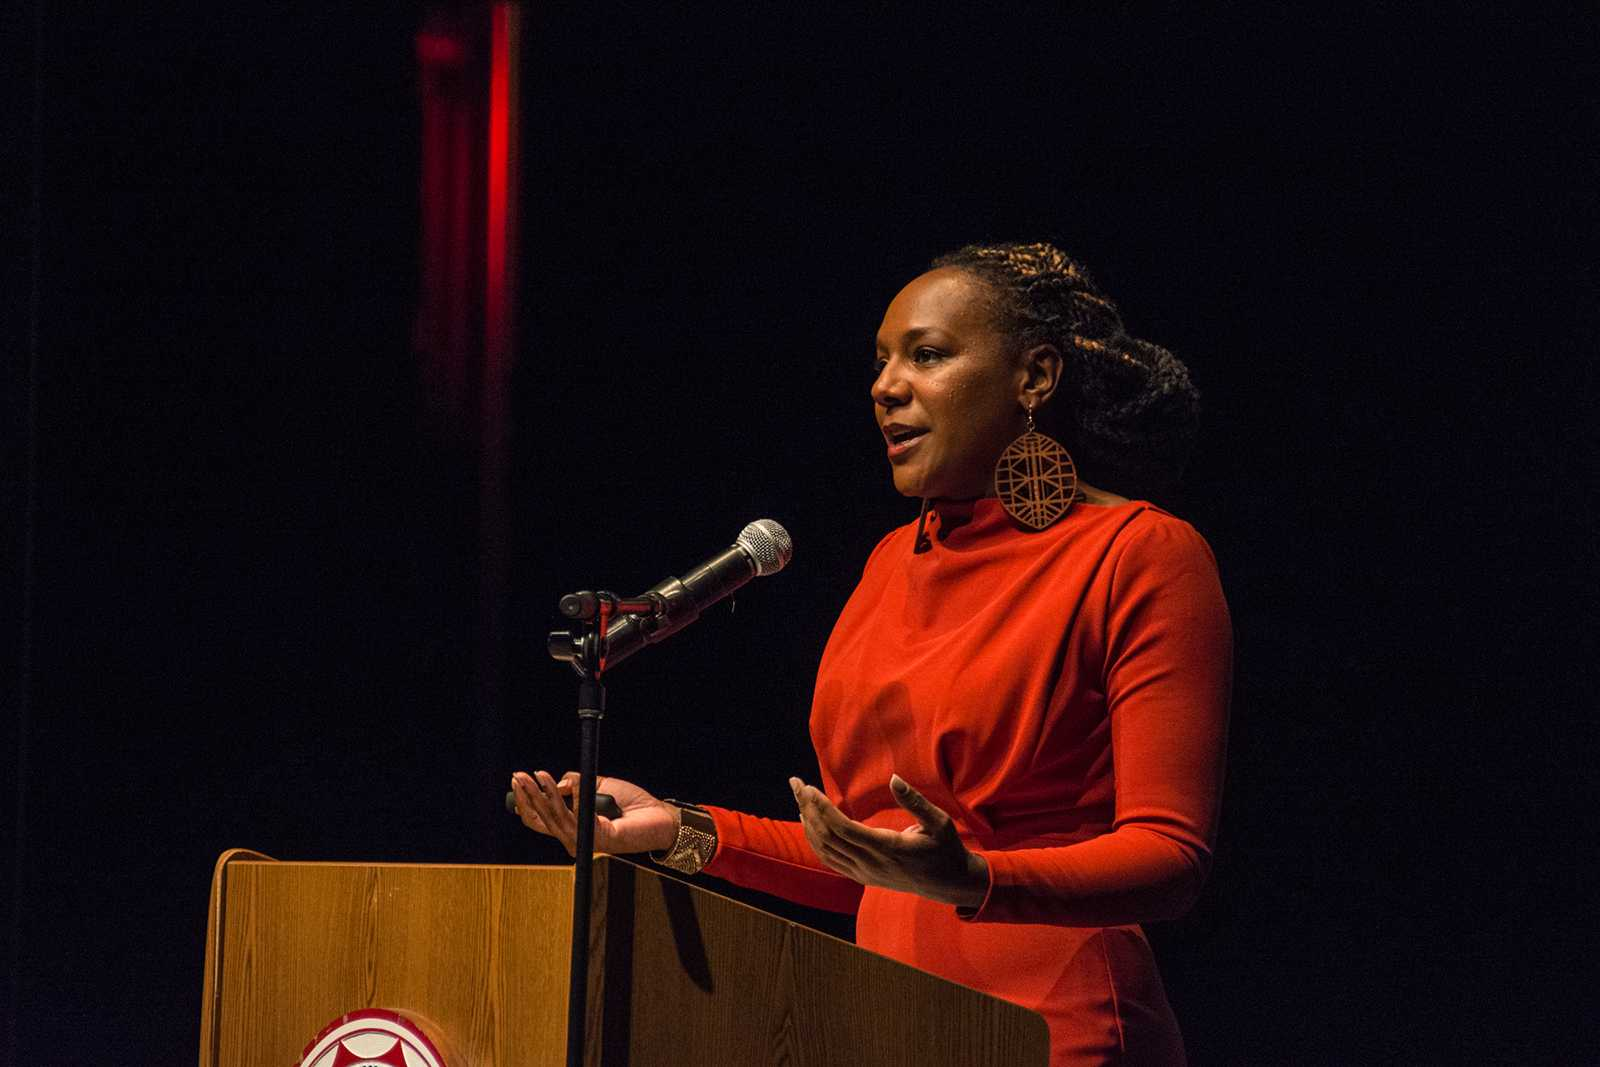 Bree Newsome Speaking to students about her actions in removing the confederate flag and reasons why she did it at CSUN Performance Hall. Photo credit: Alejandro Aranda